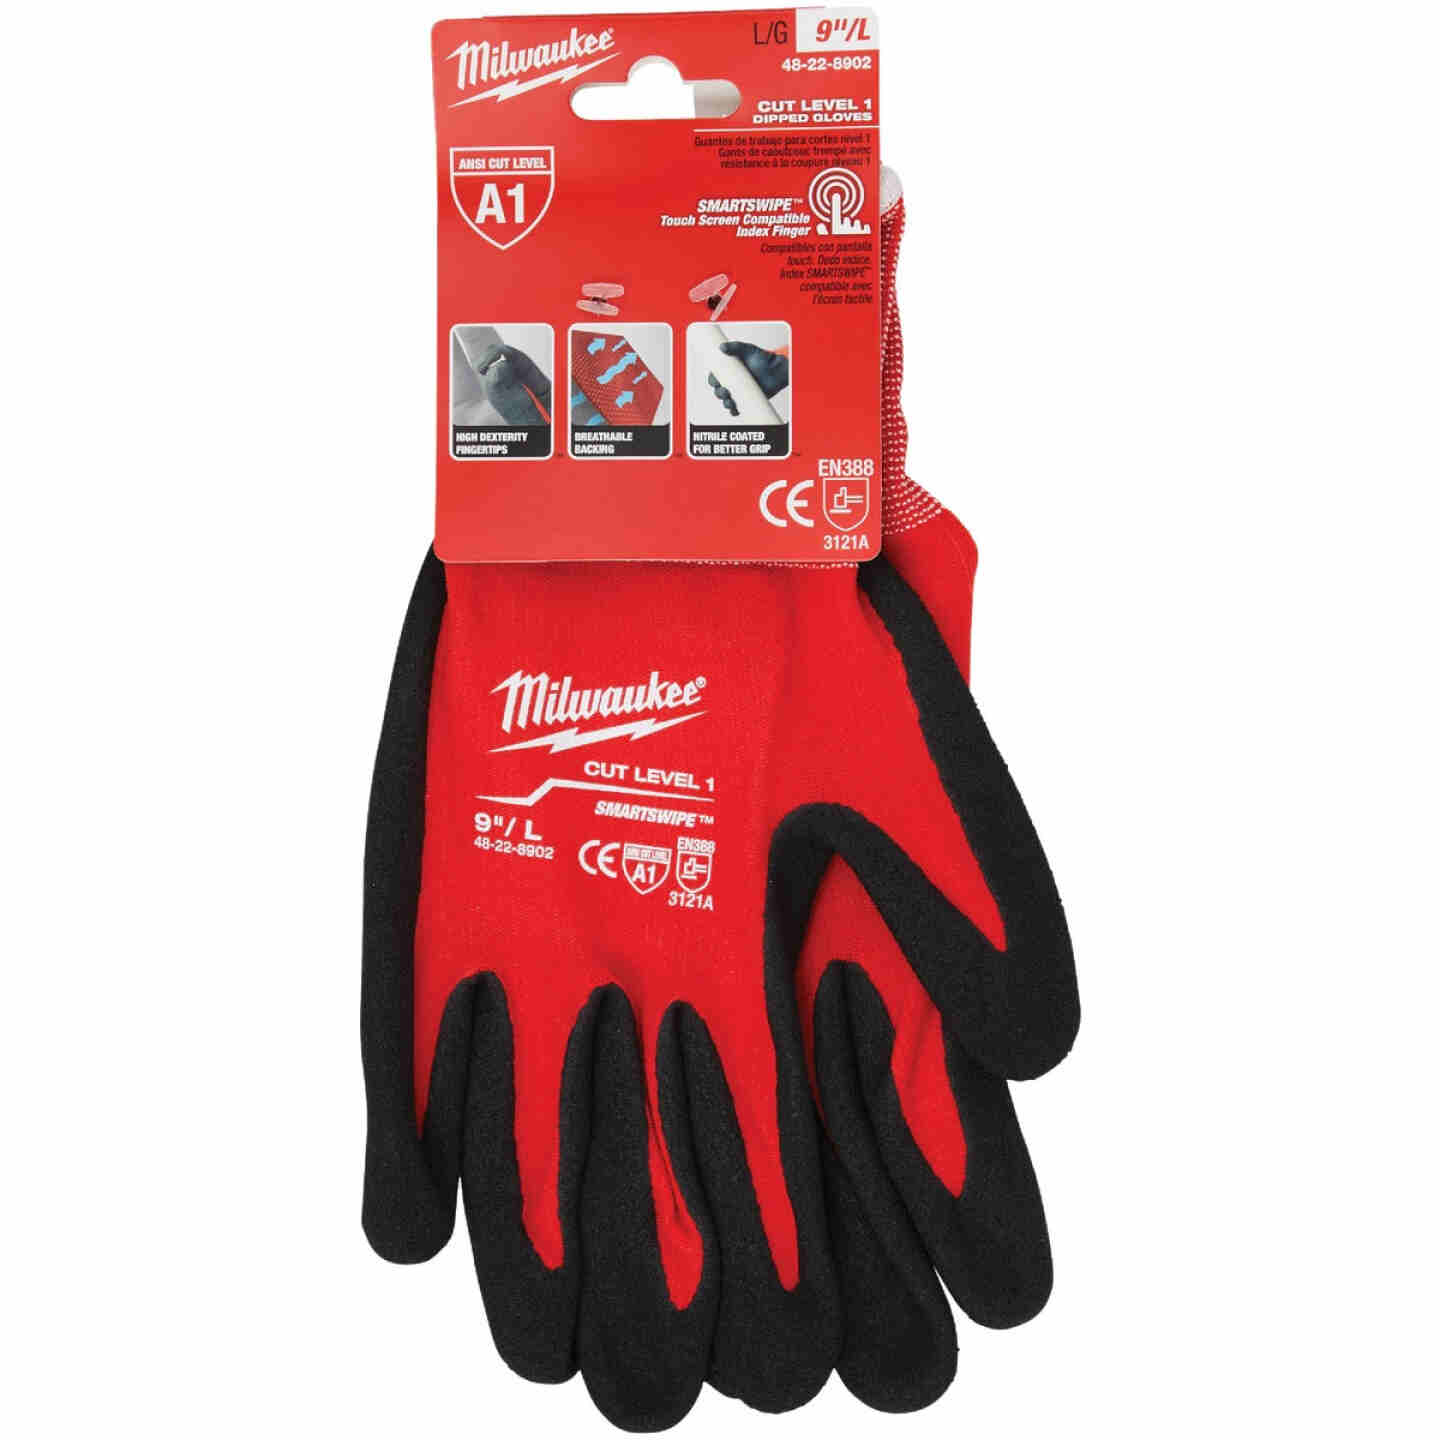 Milwaukee Unisex Large Nitrile Coated Cut Level 1 Work Glove Image 6